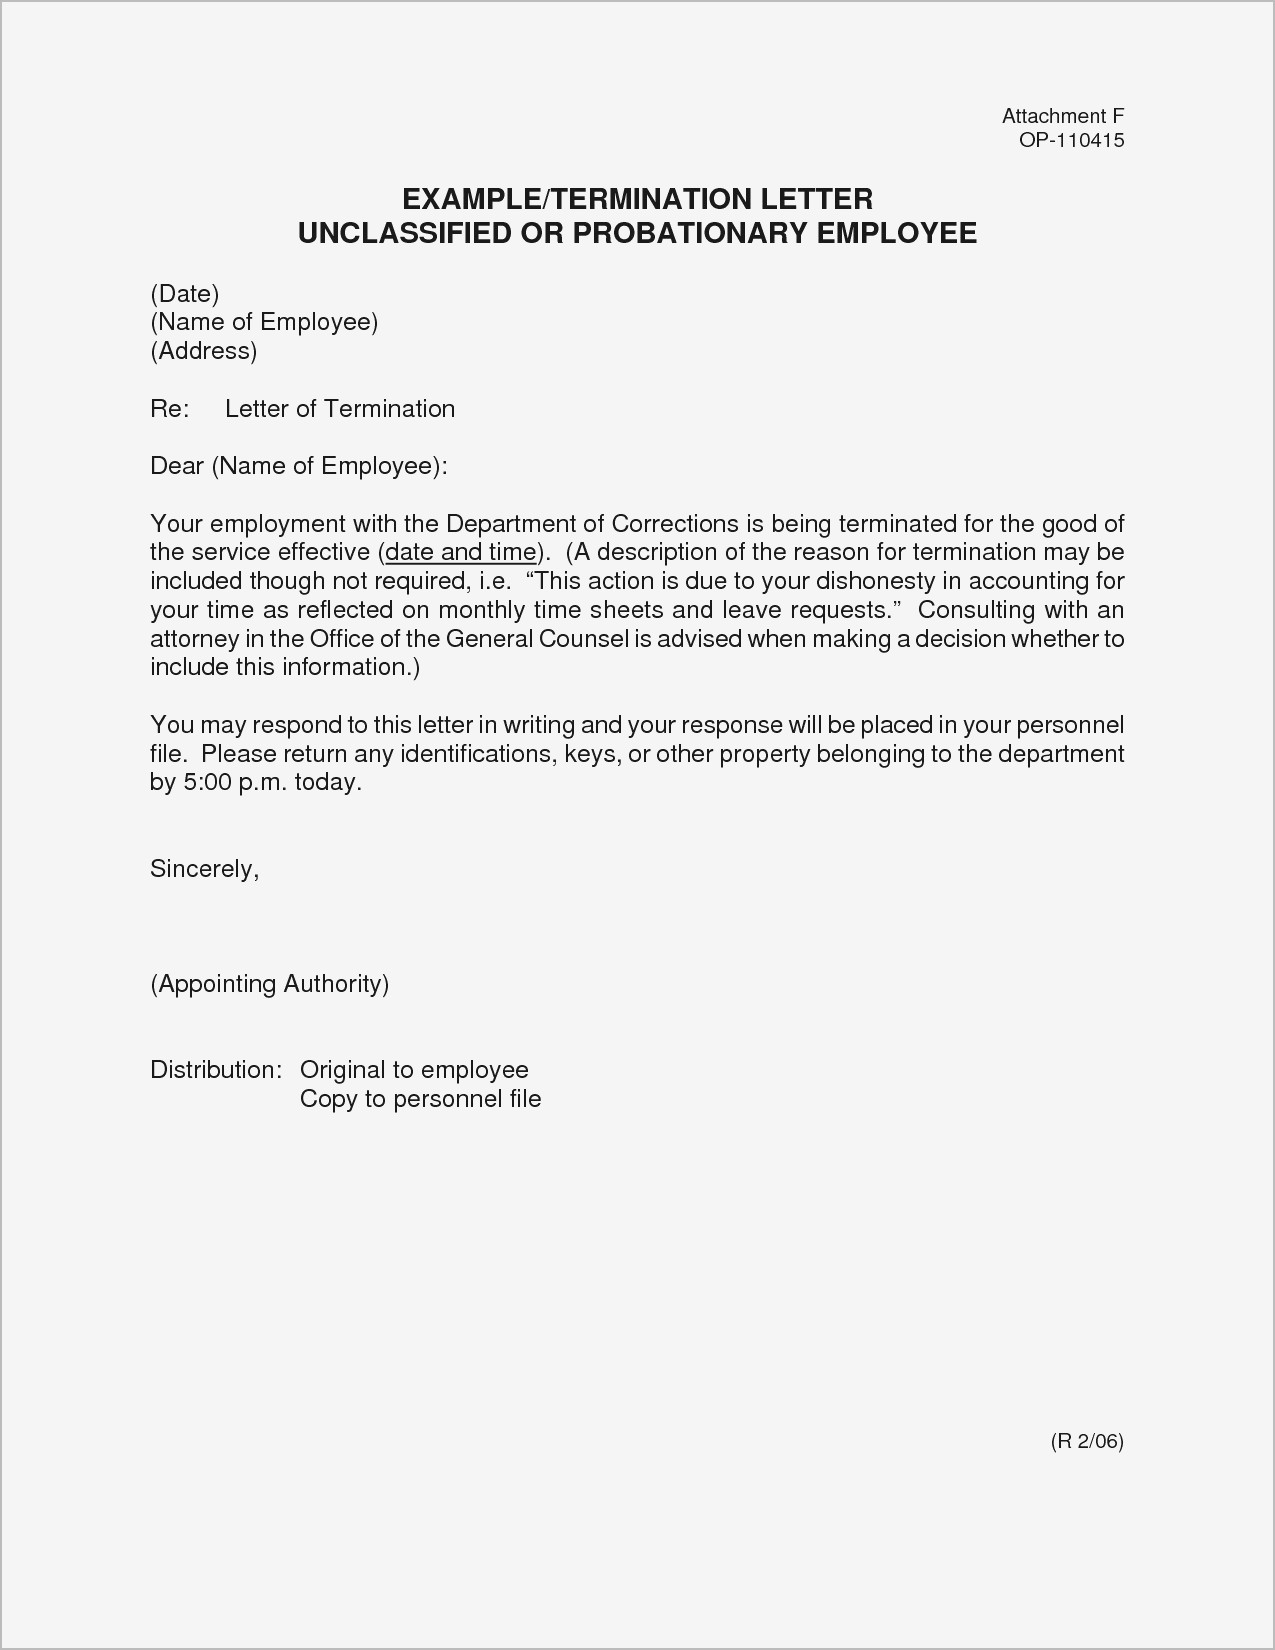 Dismissal Letter Template - Sample A Job Termination Letter New Example Termination Letter to